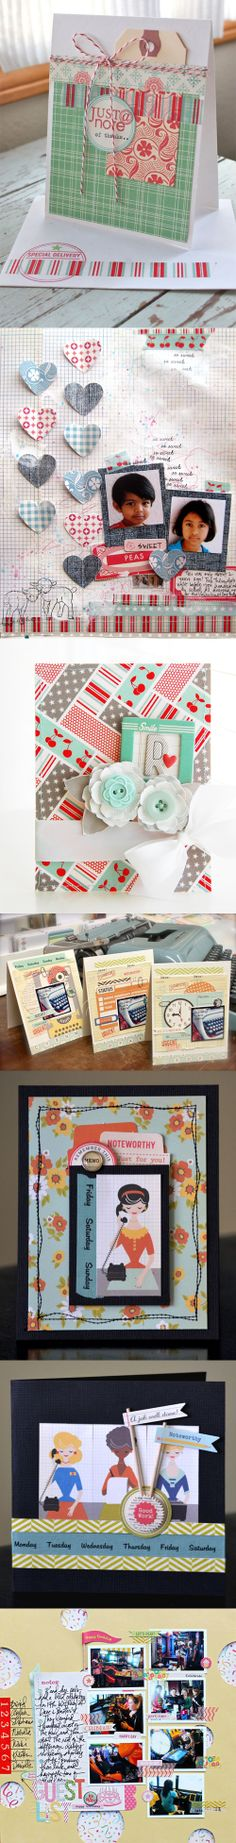 October Afternoon Giant Washi Tape Pack.  72% OFF at www.peachycheap.com!